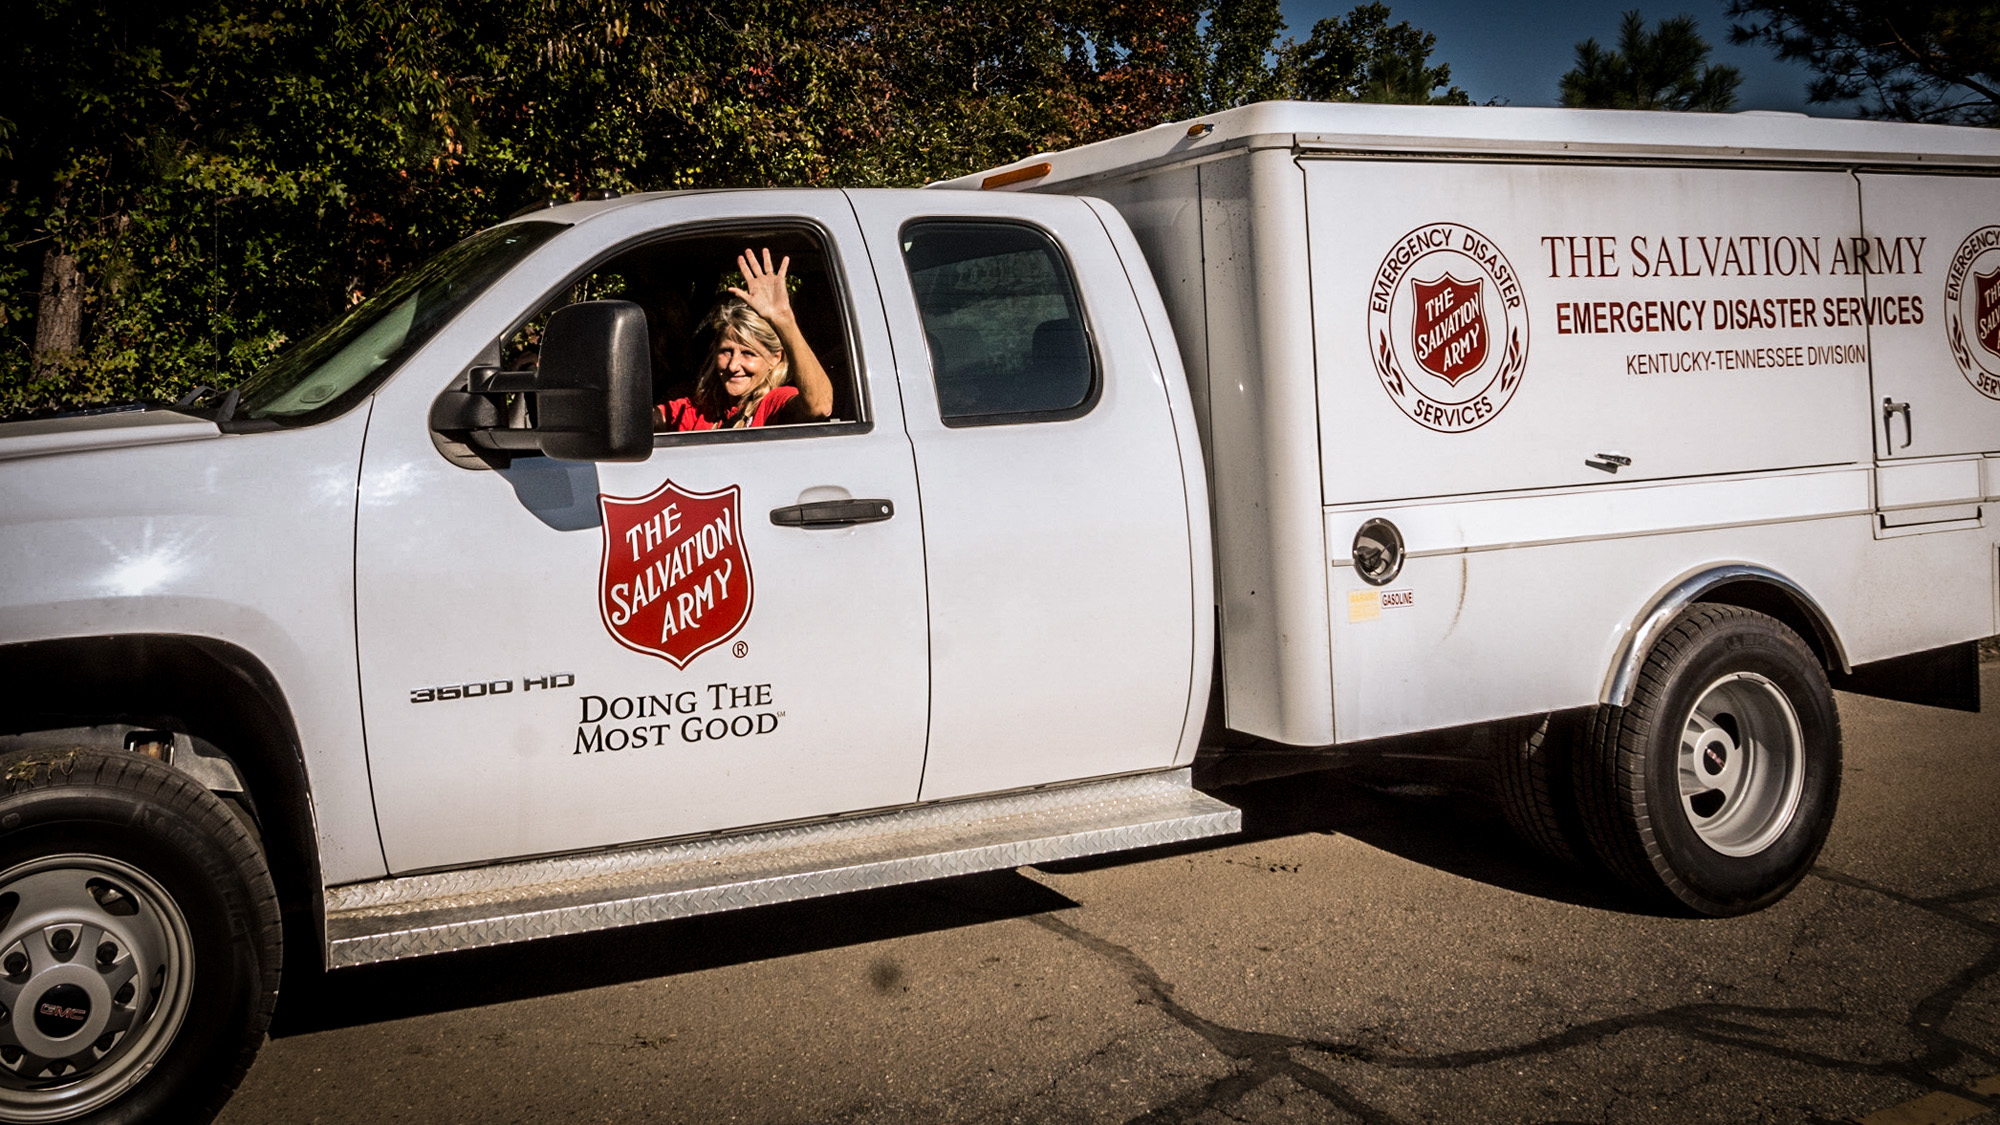 We Serve Because We Love The Salvation Army